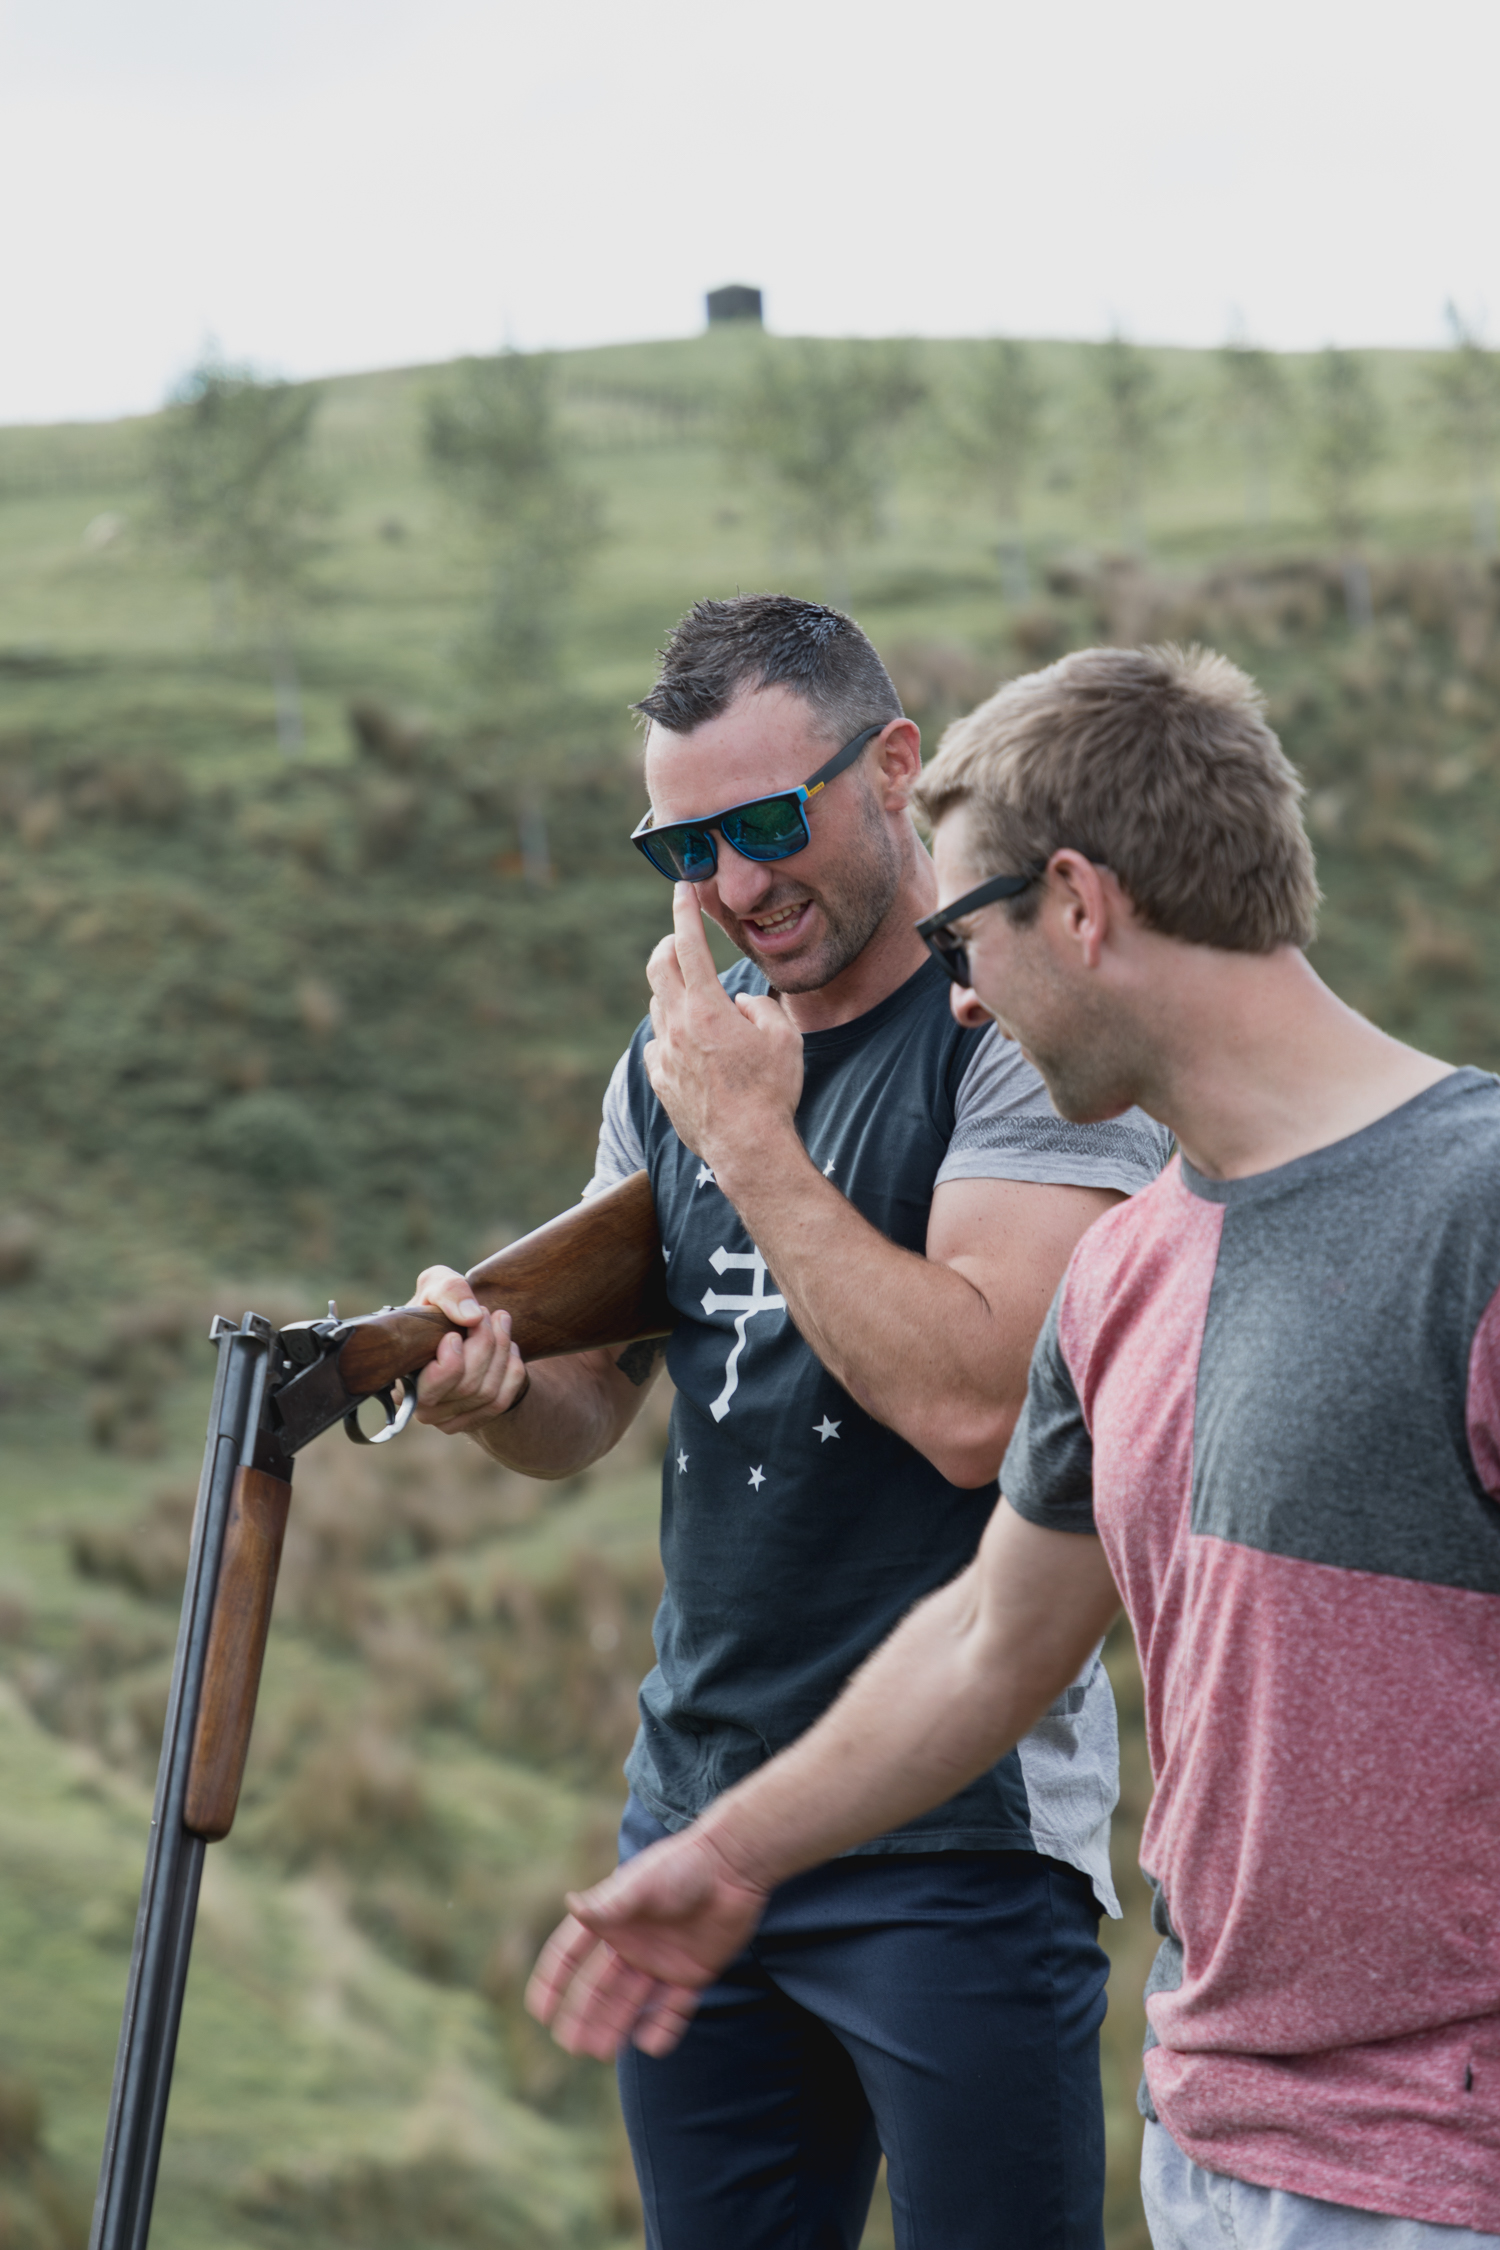 wedding-at-the-red-barn-new-zealand-wedding-photographer-groom-and-groomsmen-shooting-clays-laughing.jpg